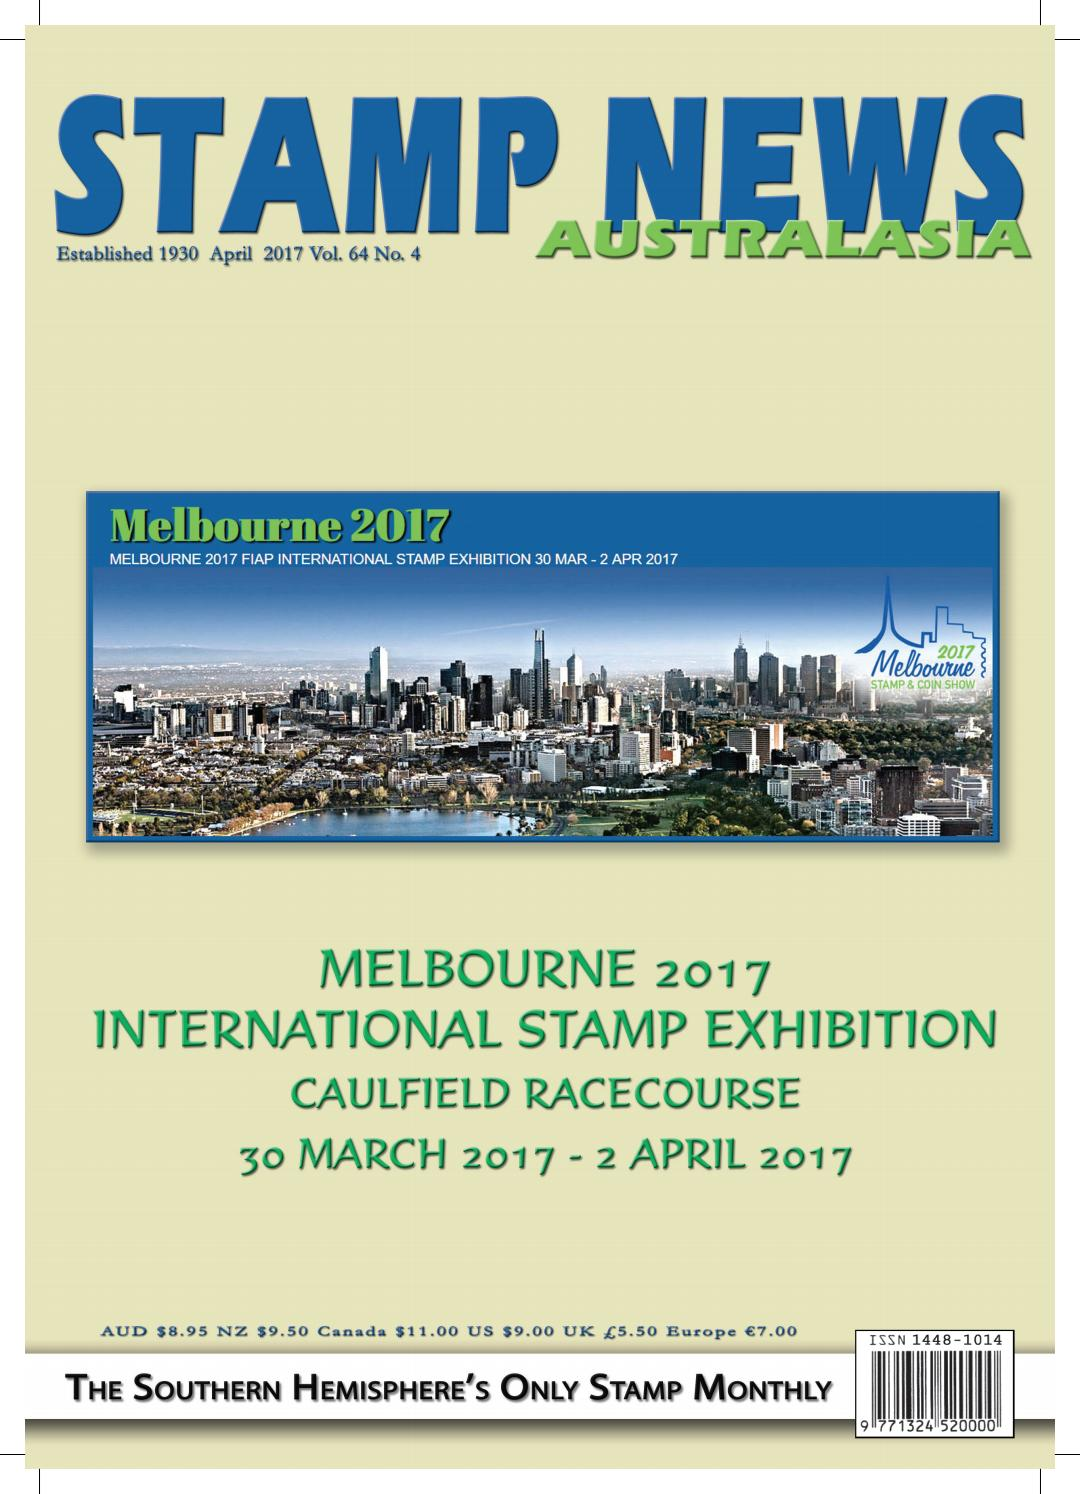 Stamp News Australasia - April 2017 by Stamp News Australasia - issuu